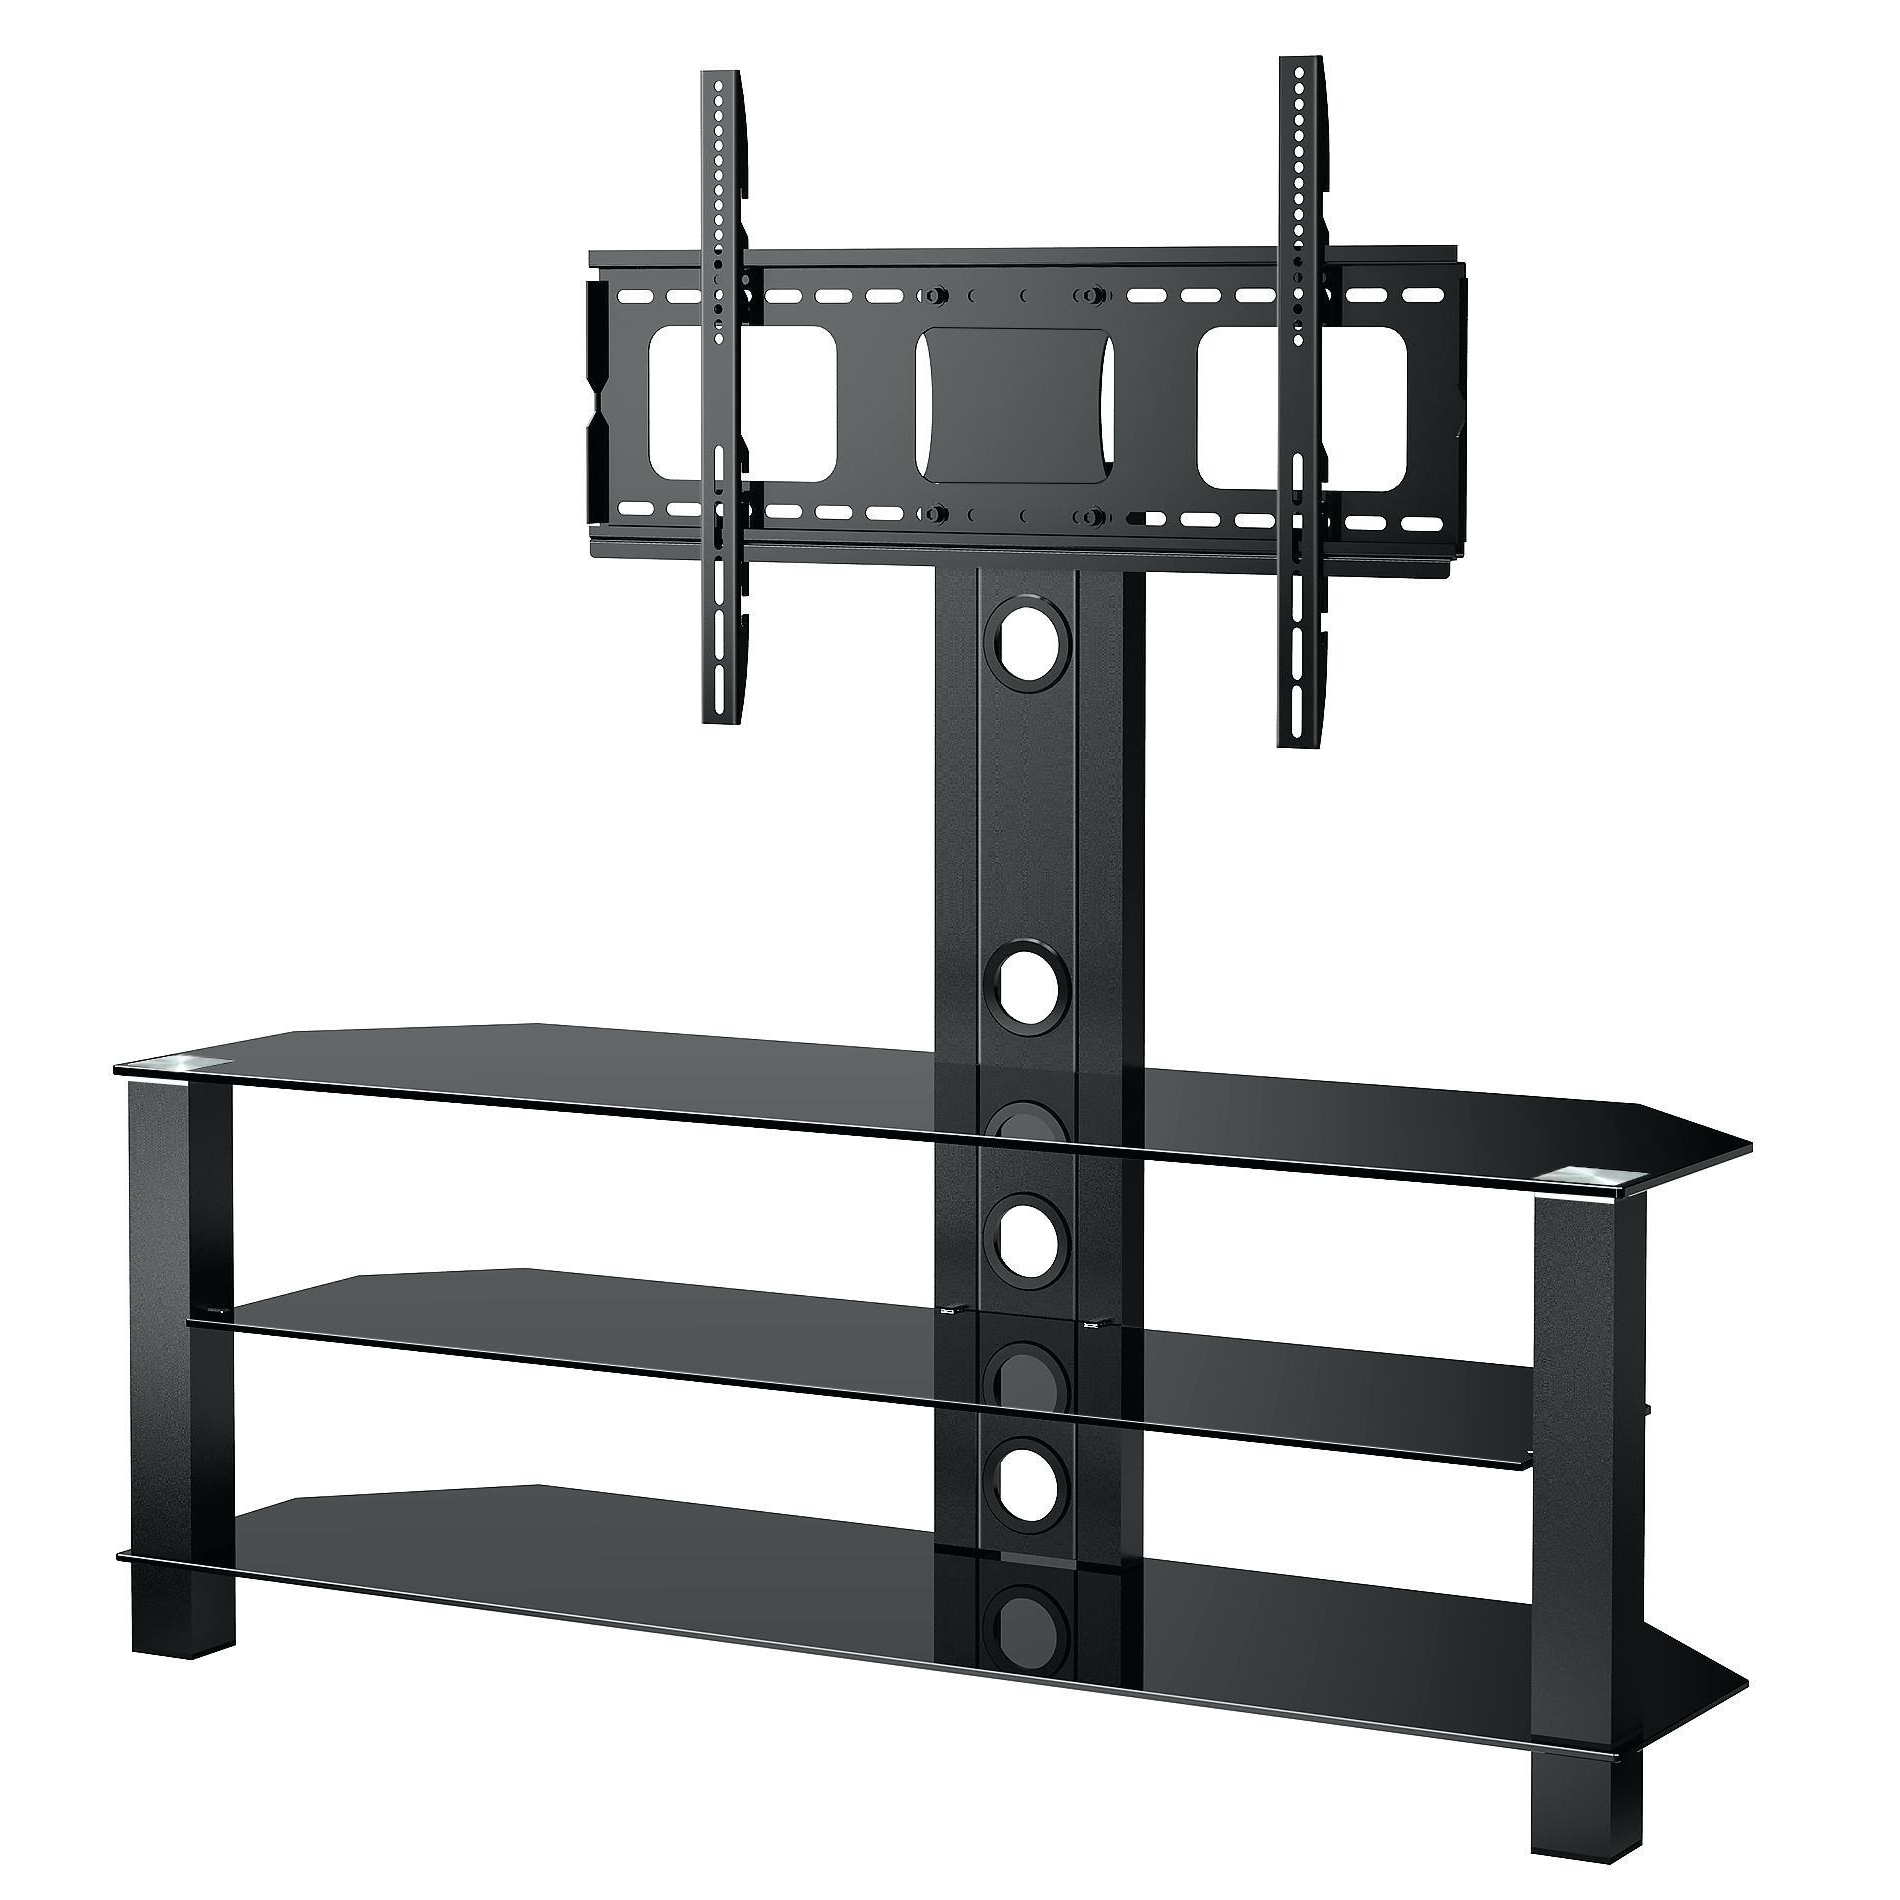 Fancy Tv Stands Intended For Most Current Inspiring Small Tv Stands Fancy Small Tv Stands For Bedroom And Tv (View 4 of 20)